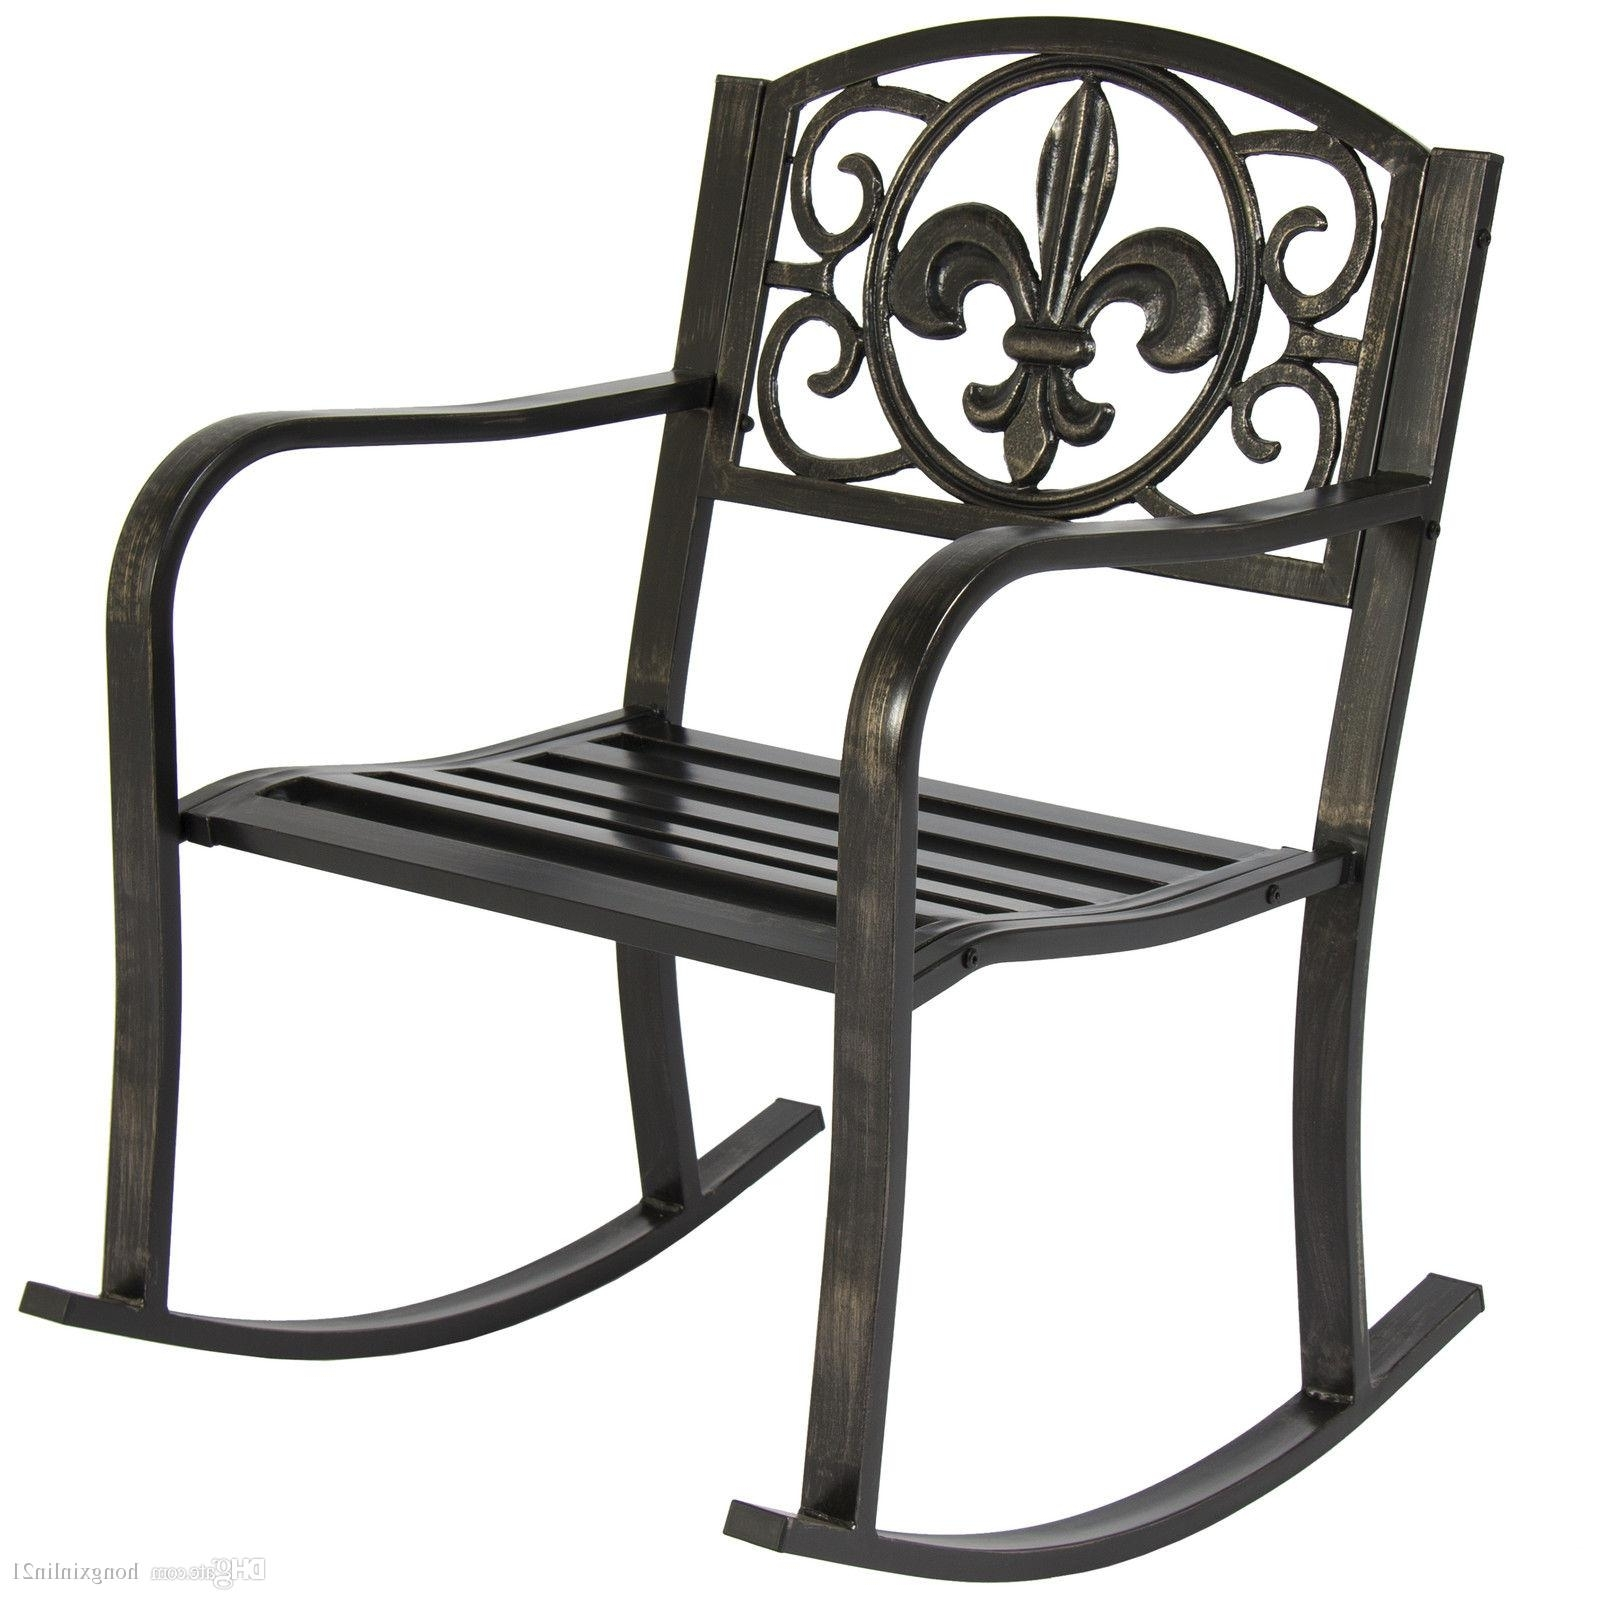 Outdoor Patio Metal Rocking Chairs With Regard To Popular 2018 Patio Metal Rocking Chair Porch Seat Deck Outdoor Backyard (View 3 of 20)